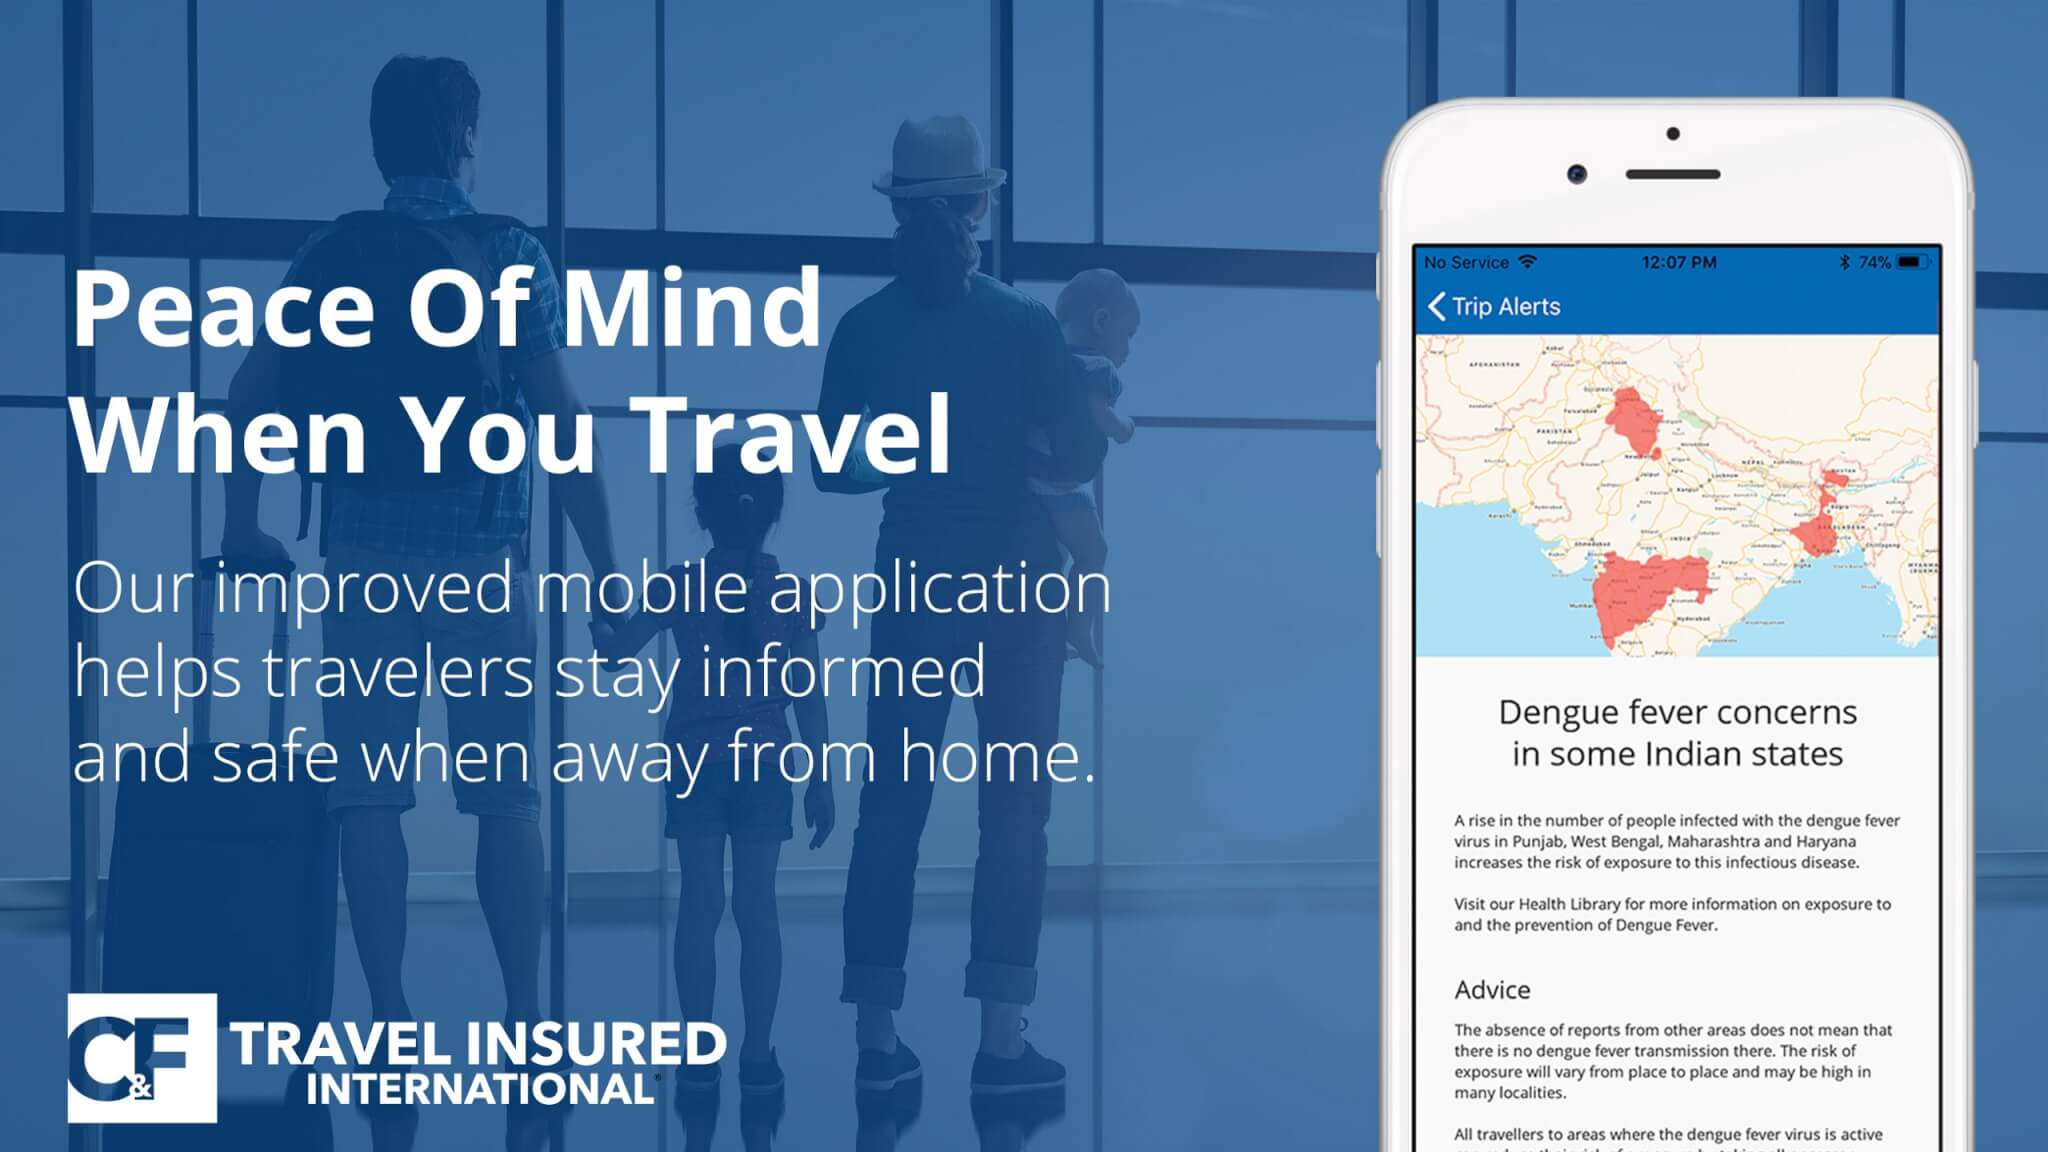 Sitata And Travel Insured International Announce Innovation Partnership To Keep Travelers Out of HarmsWay